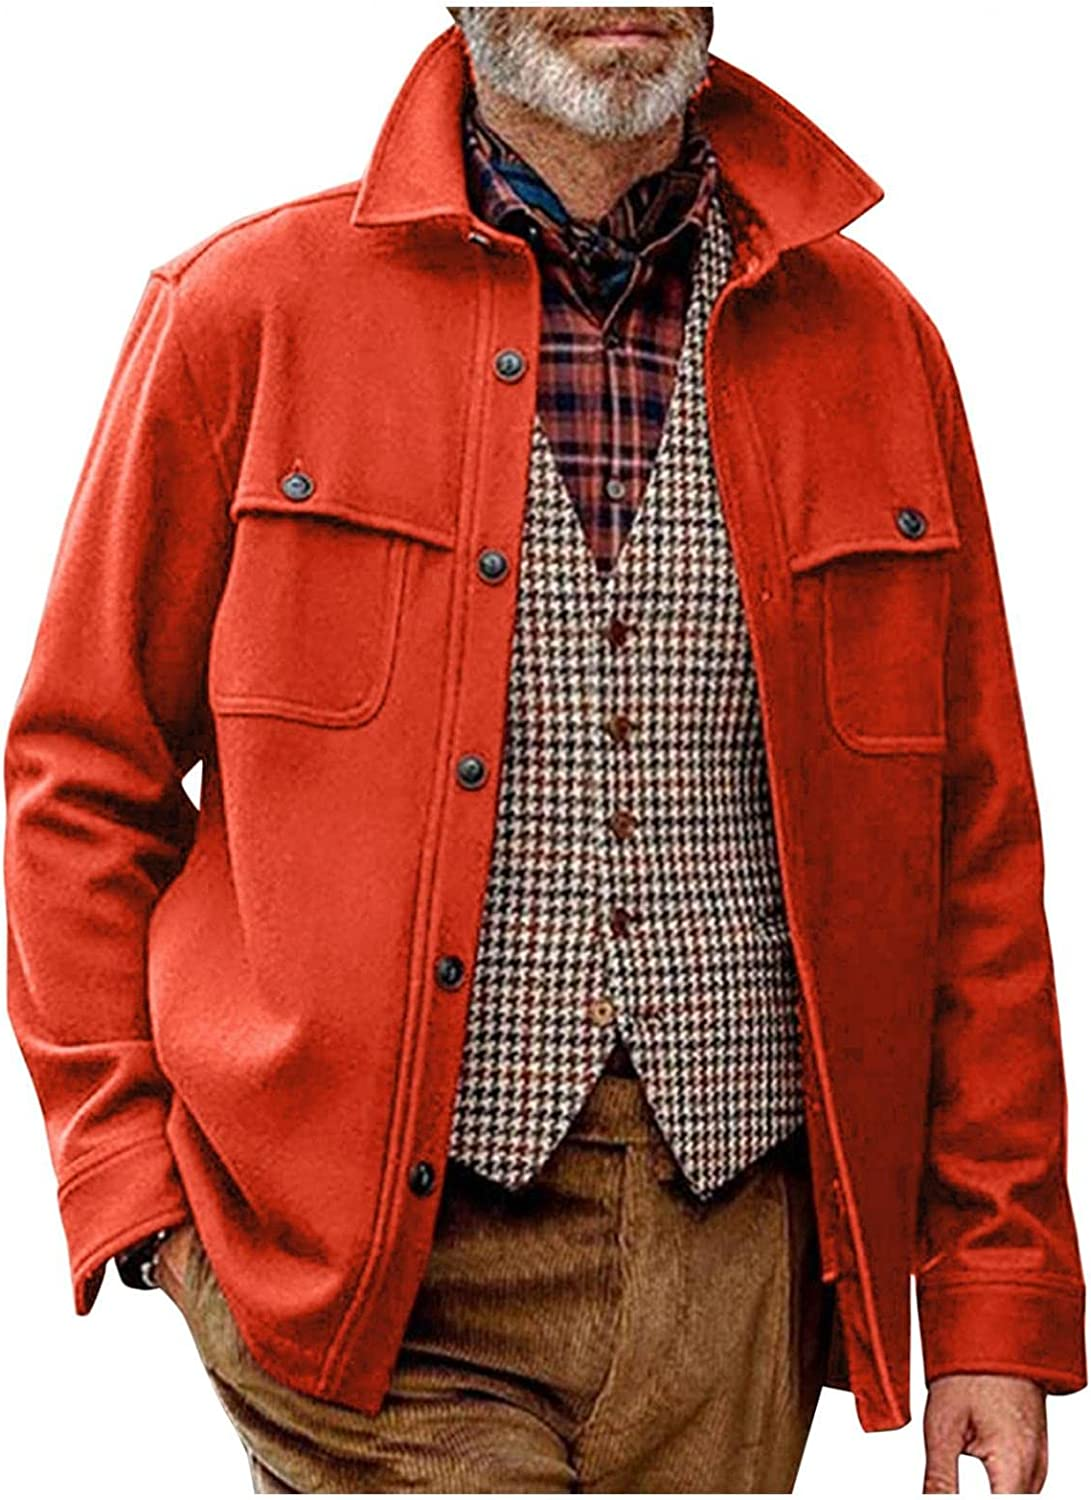 Mens Autumn and Winter Jackets Casual Loose Fit Single Breasted Coat Pure Color Softshell Stand Collar Jacket Overcoat